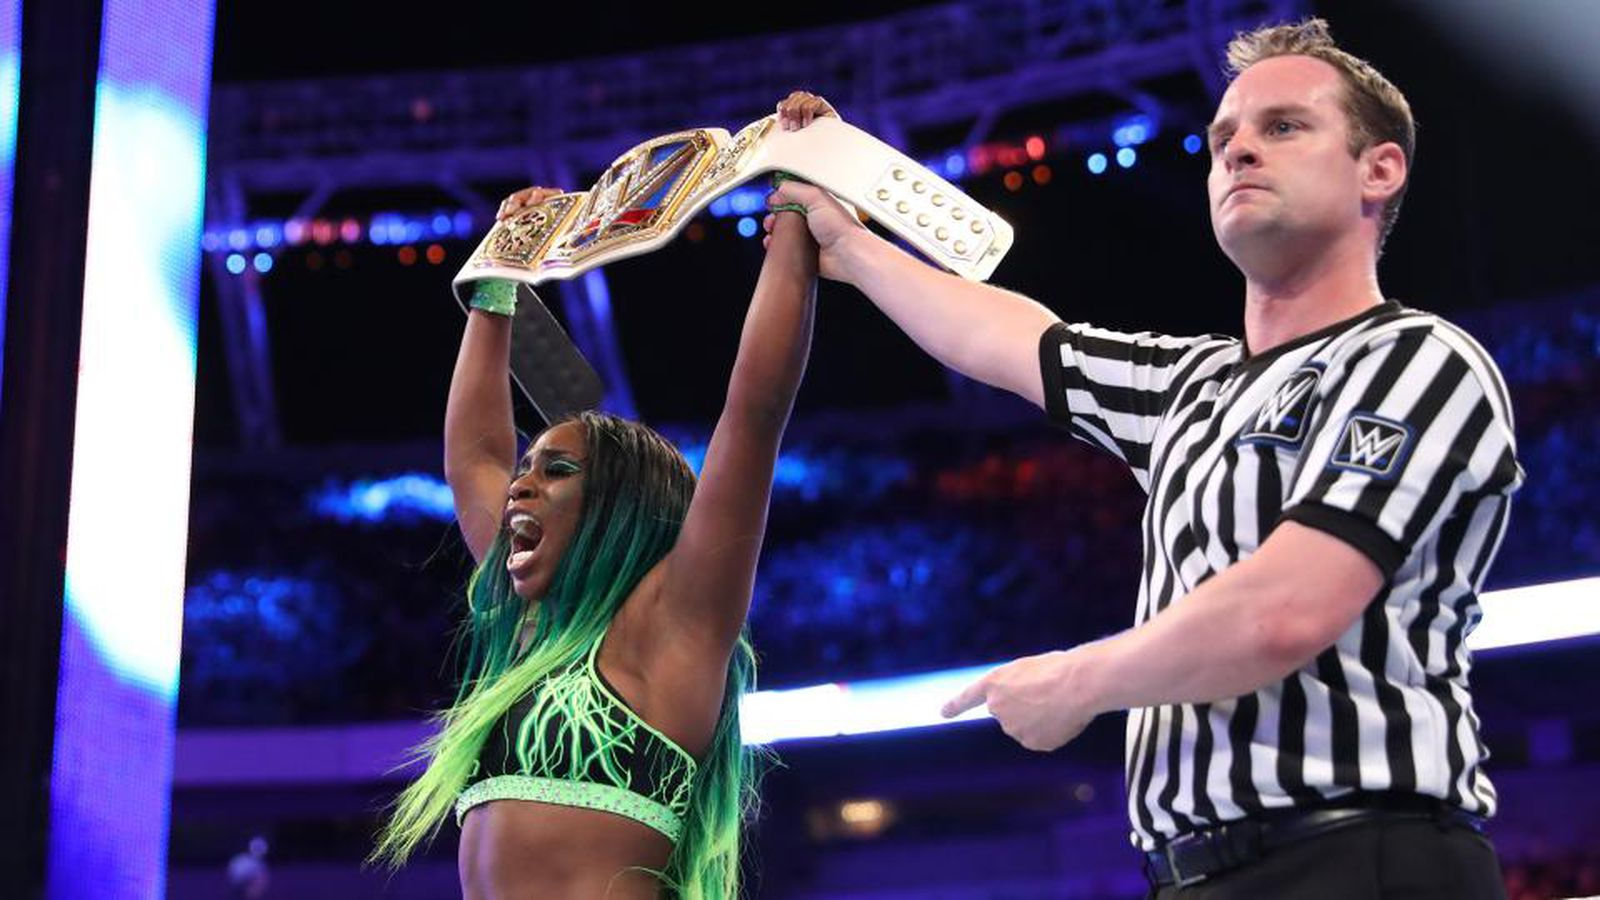 Naomi Vs Alexa Bliss Title Match Set For Smackdown Live